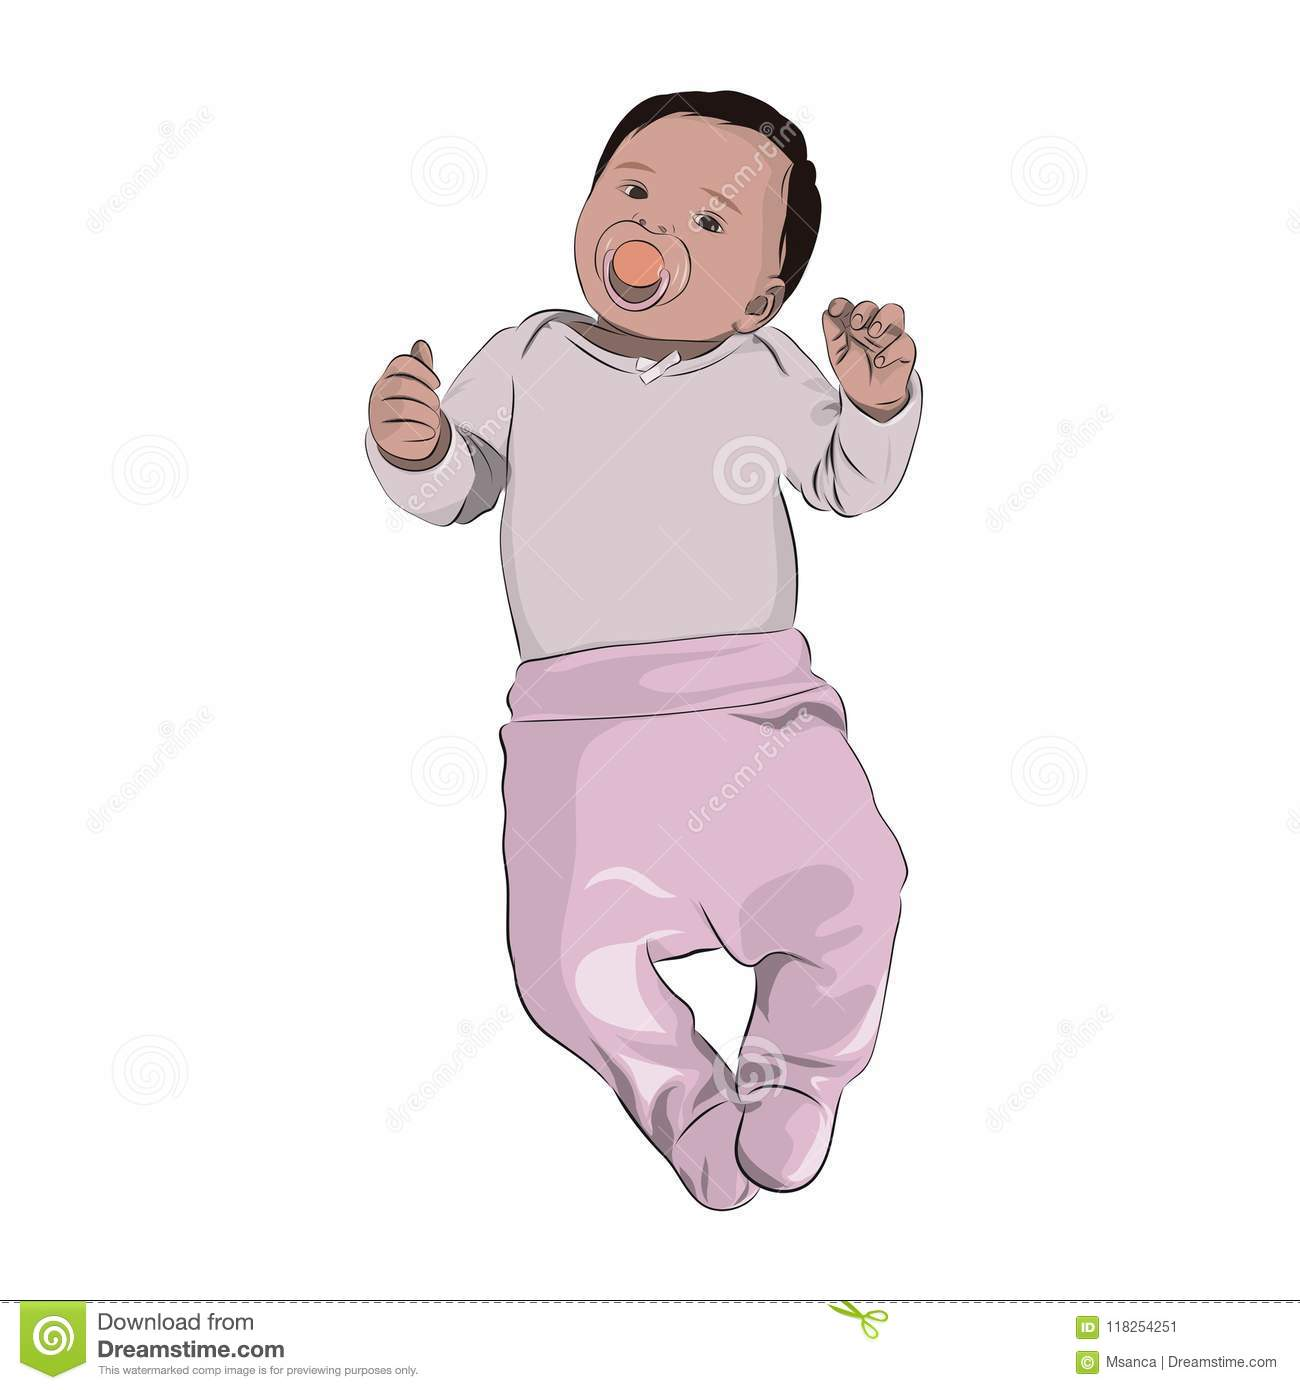 Newborn Babies For Dummies Newborn Baby With Dummy In Mouth Is Dressed In Pink Clothes